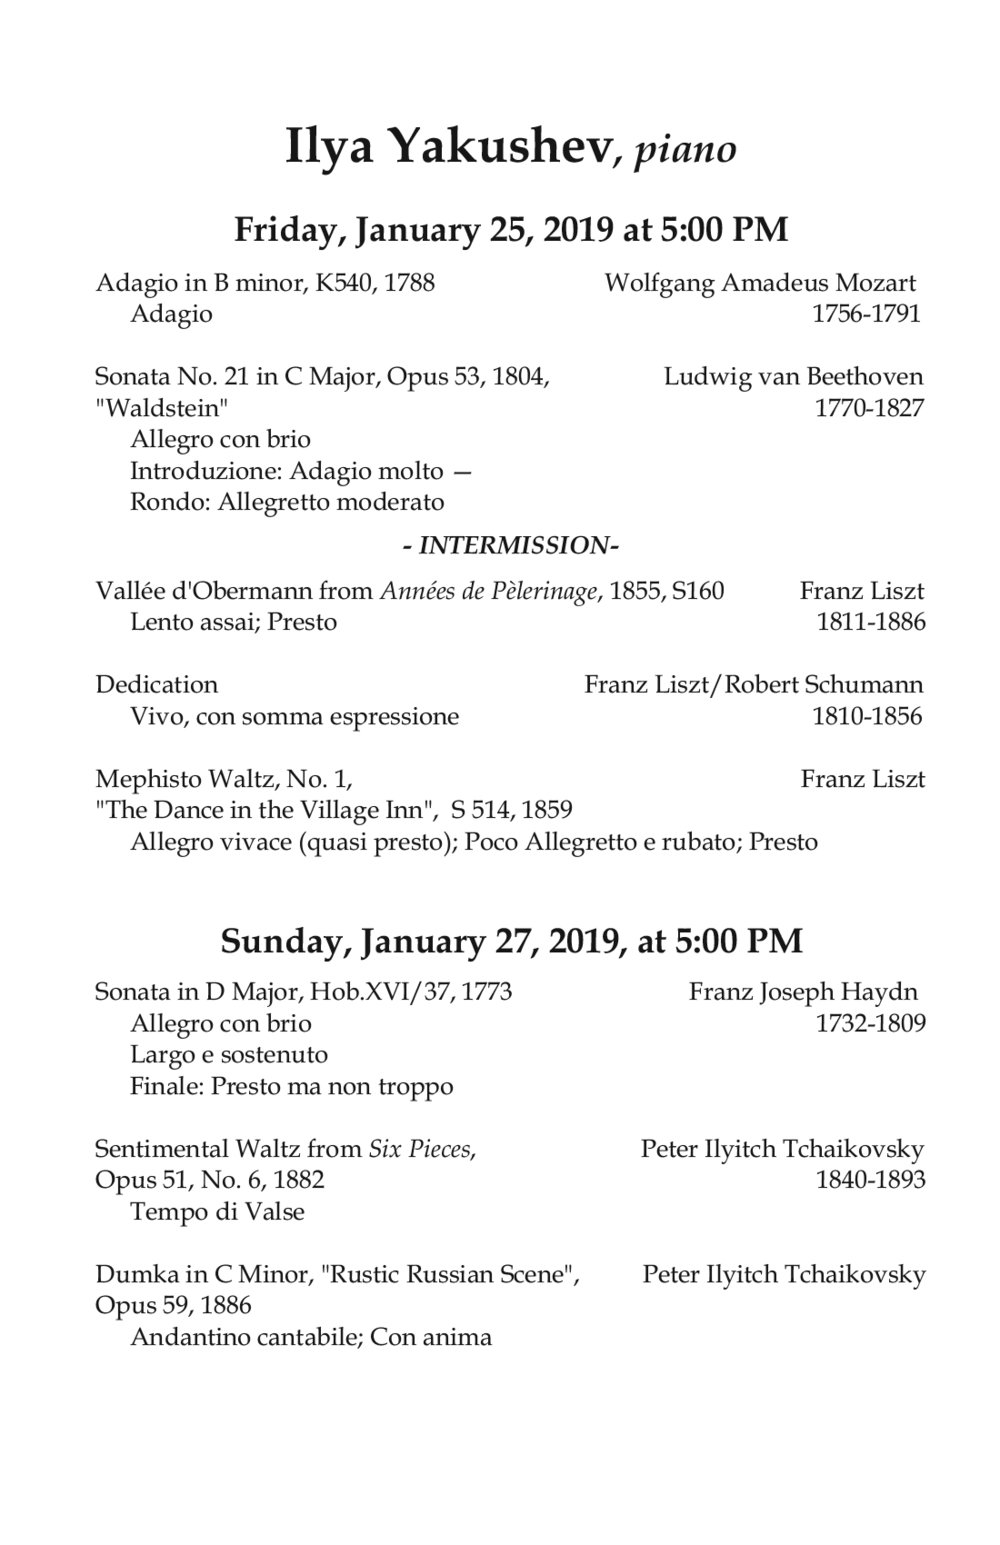 Promusica - program pages 2018-19-7.jpg